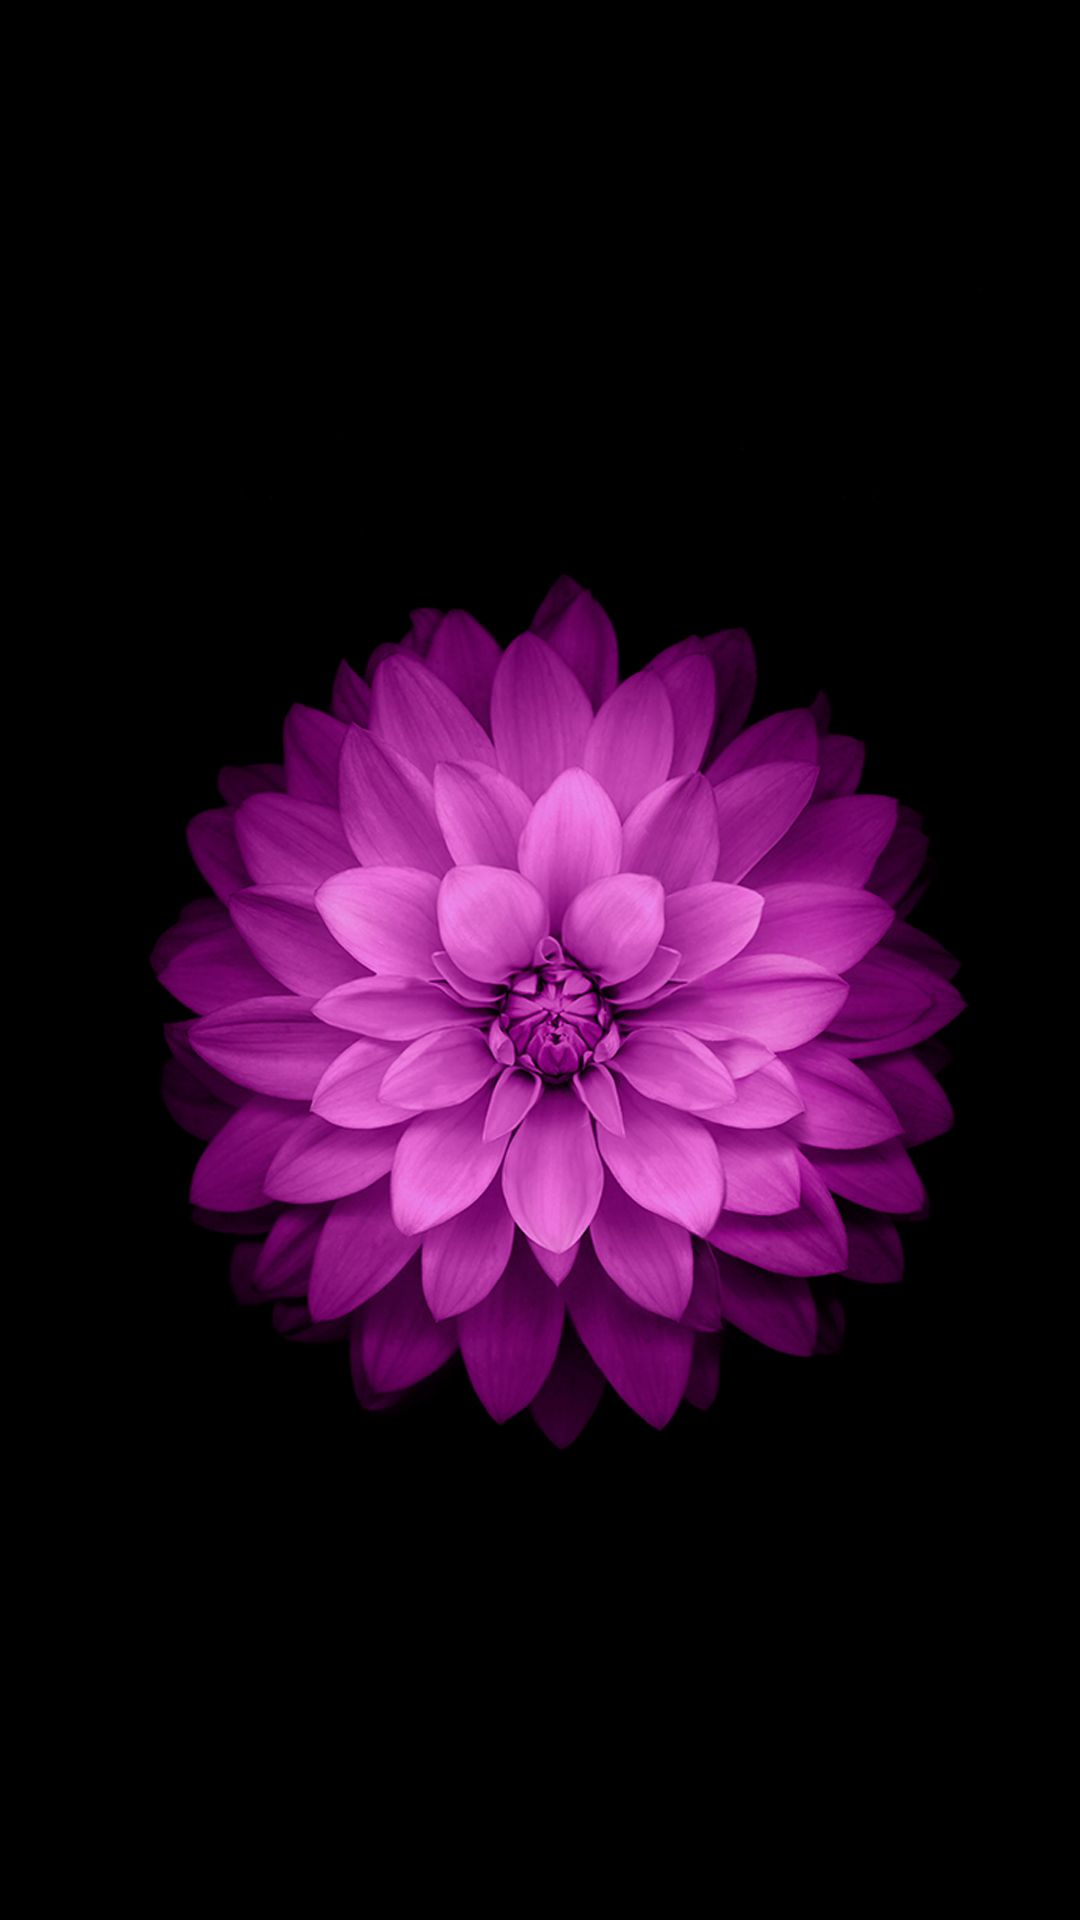 Official Hd Nature Wallpaper For Iphone 6s Plus And 6 Plus Purple Lotus Flower Flower Iphone Wallpaper Iphone 6 Plus Wallpaper Iphone 5s Wallpaper